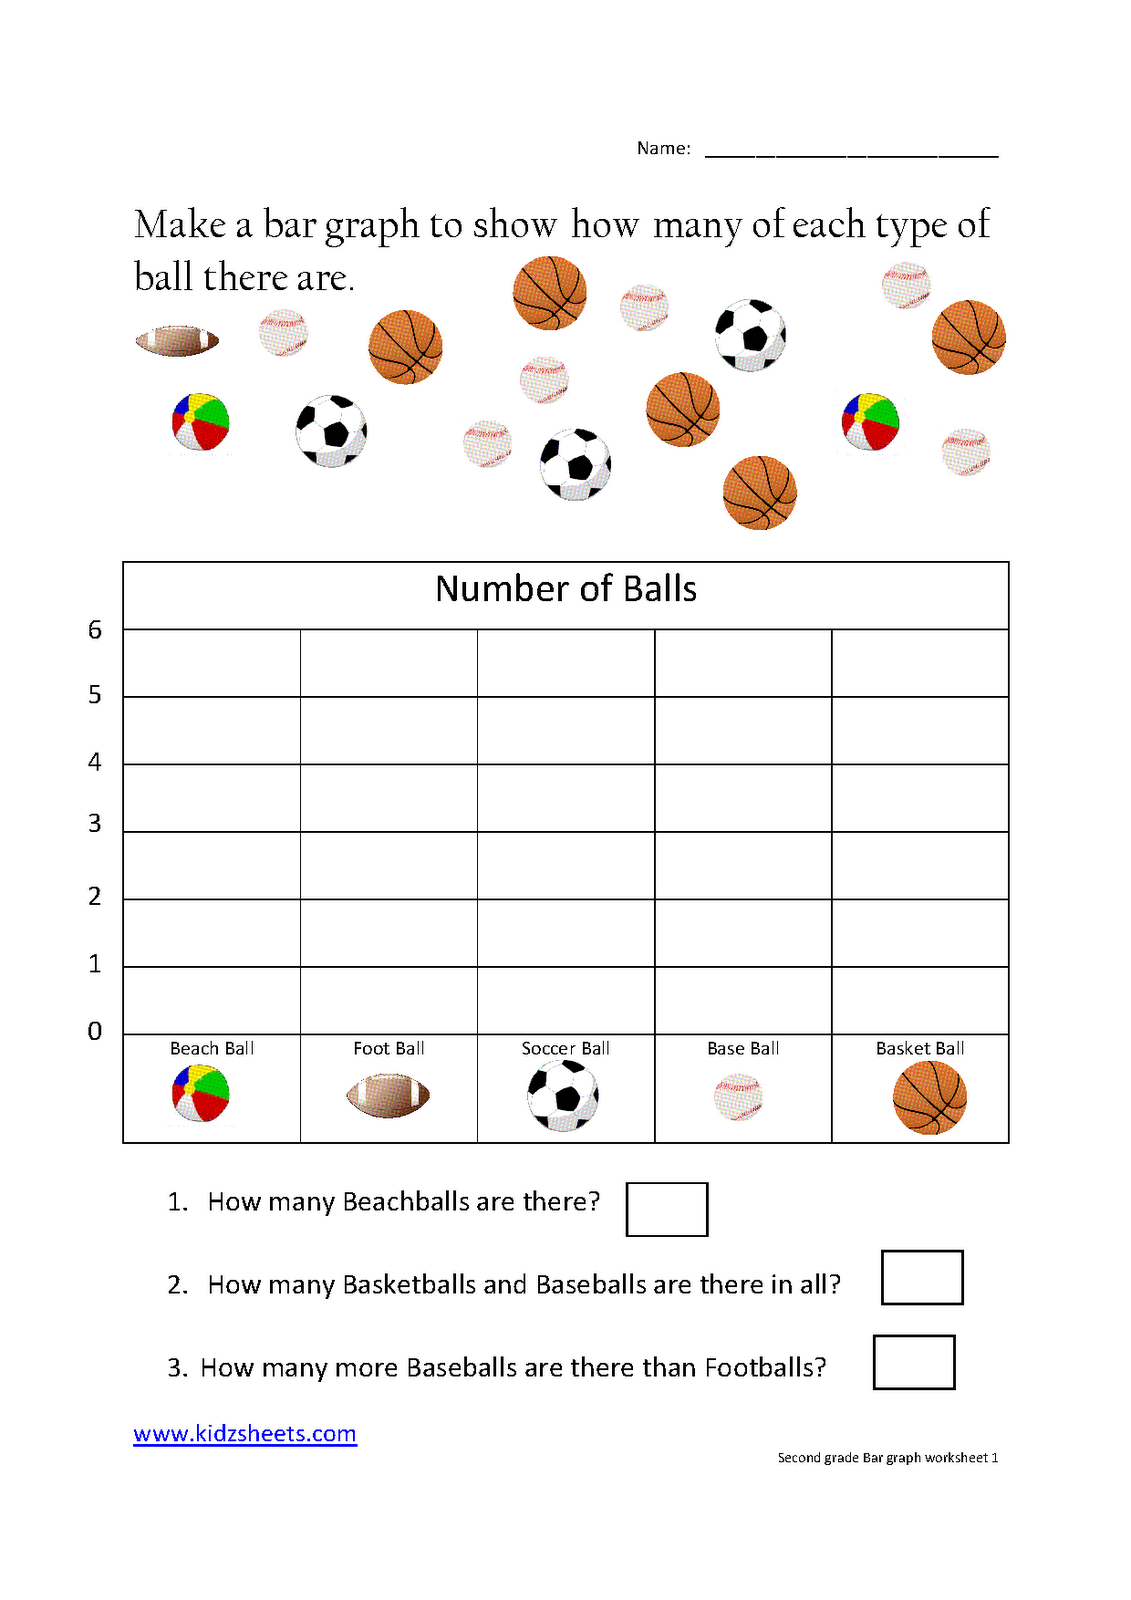 kidz worksheets: second grade bar graph worksheet1 | school